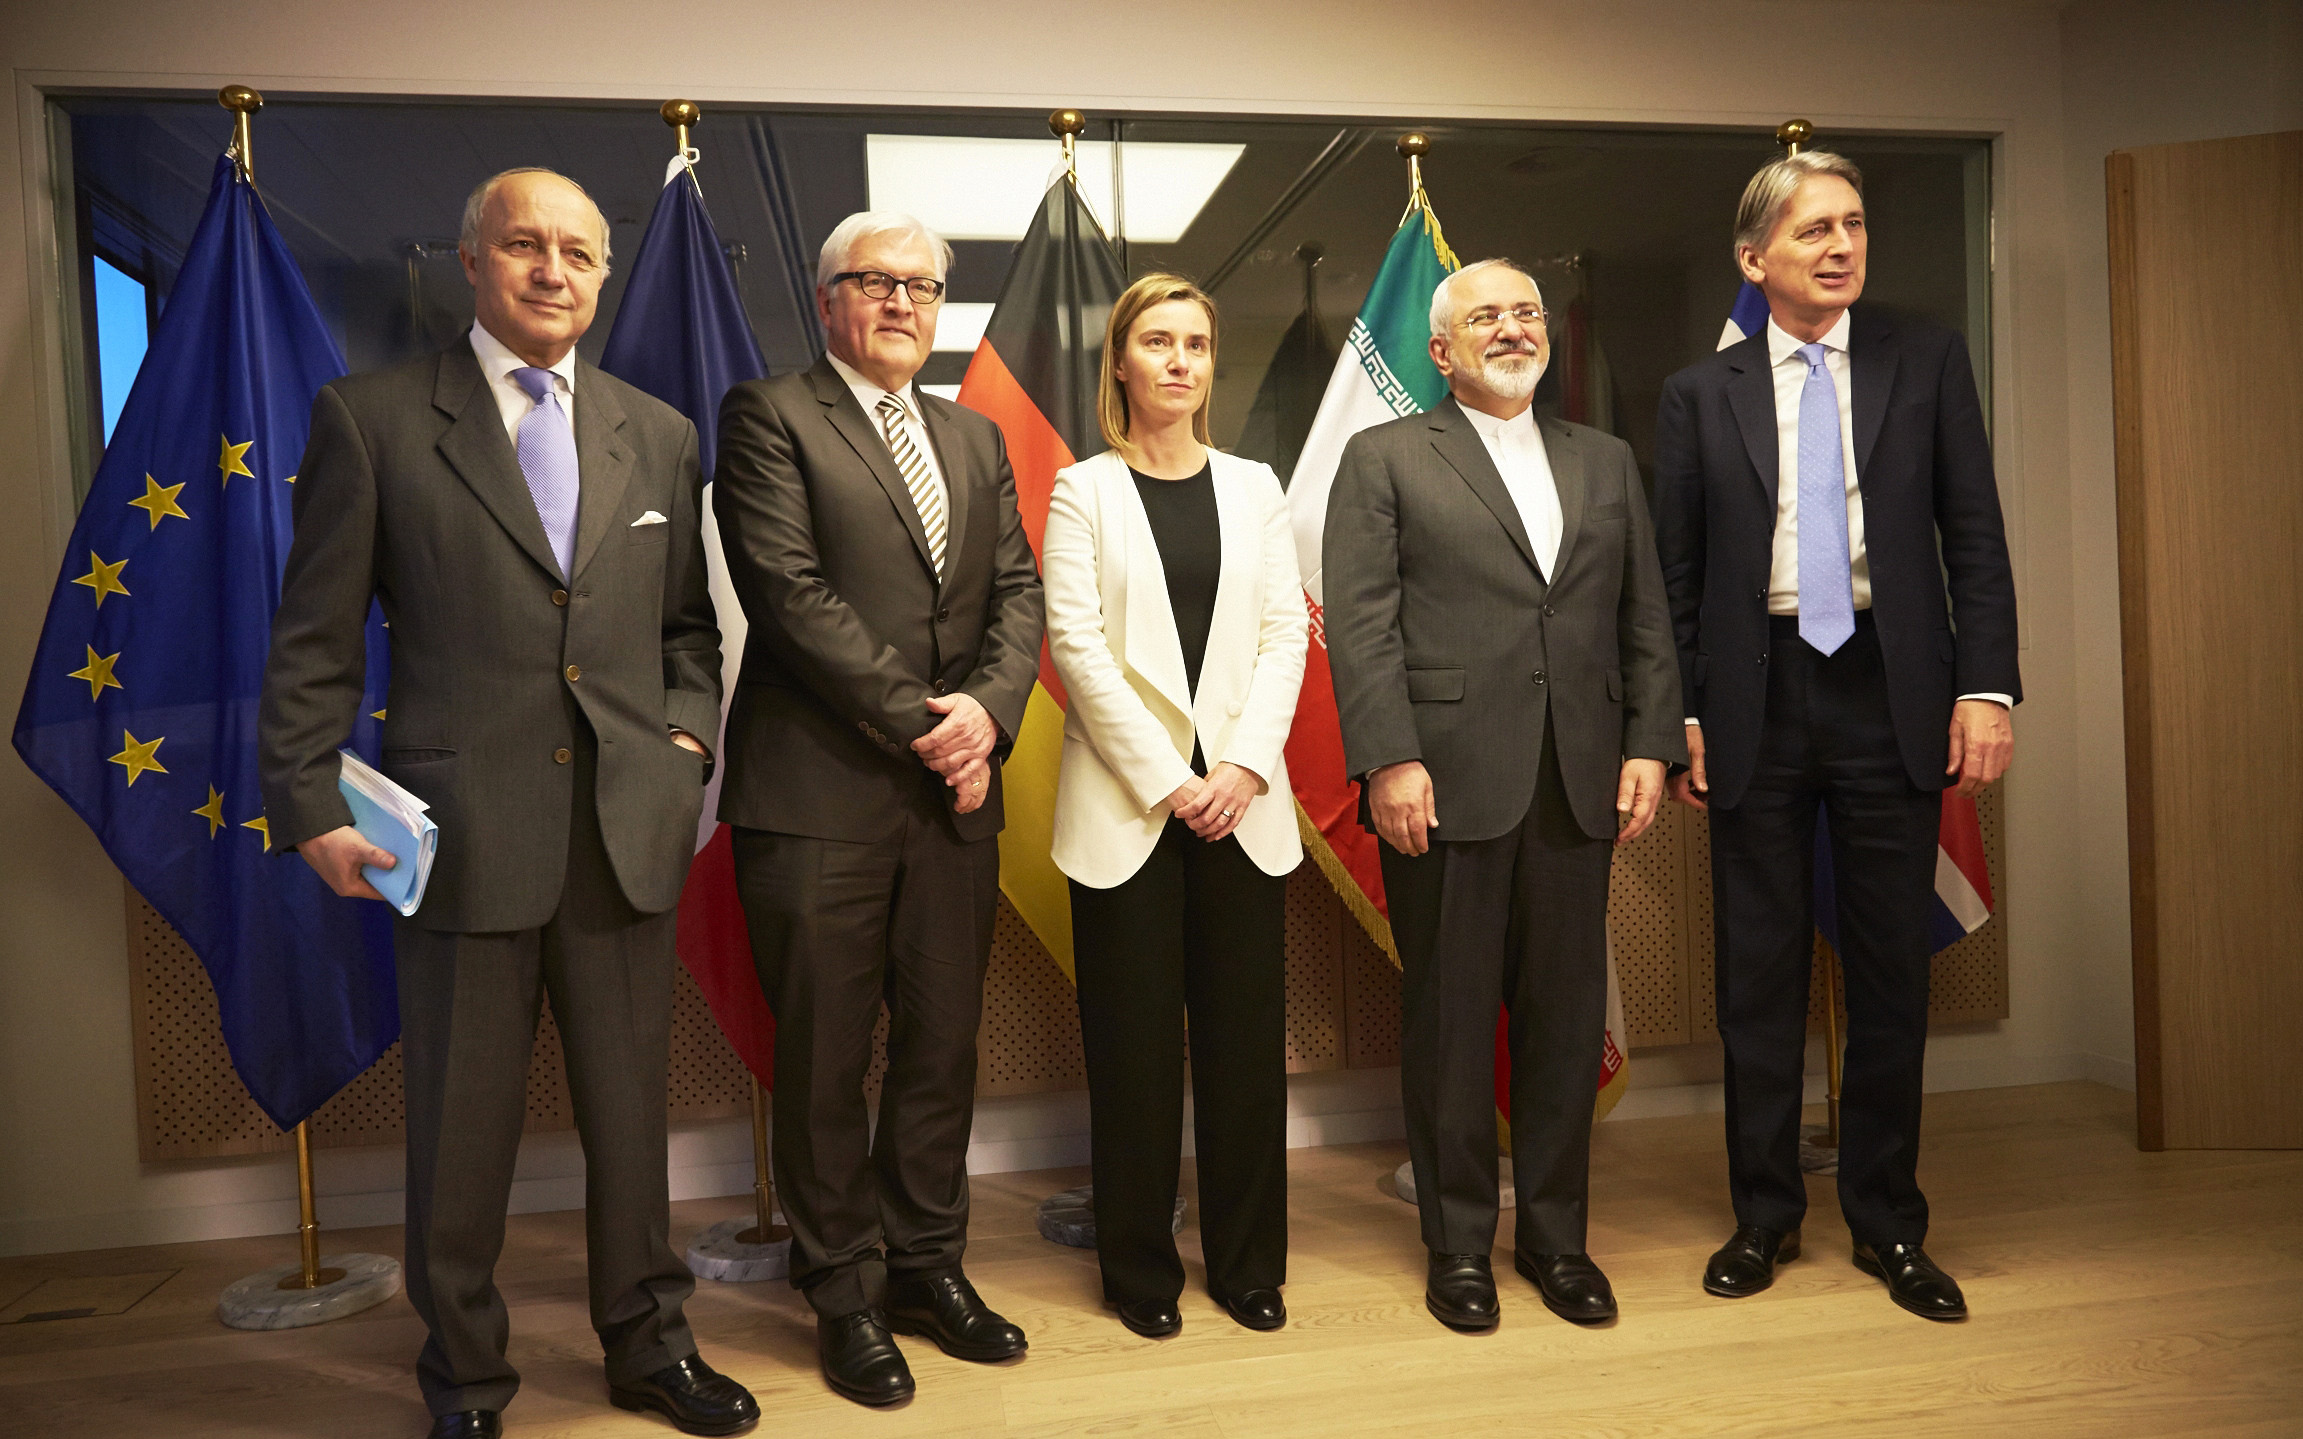 Europe stepping up its game on Iran